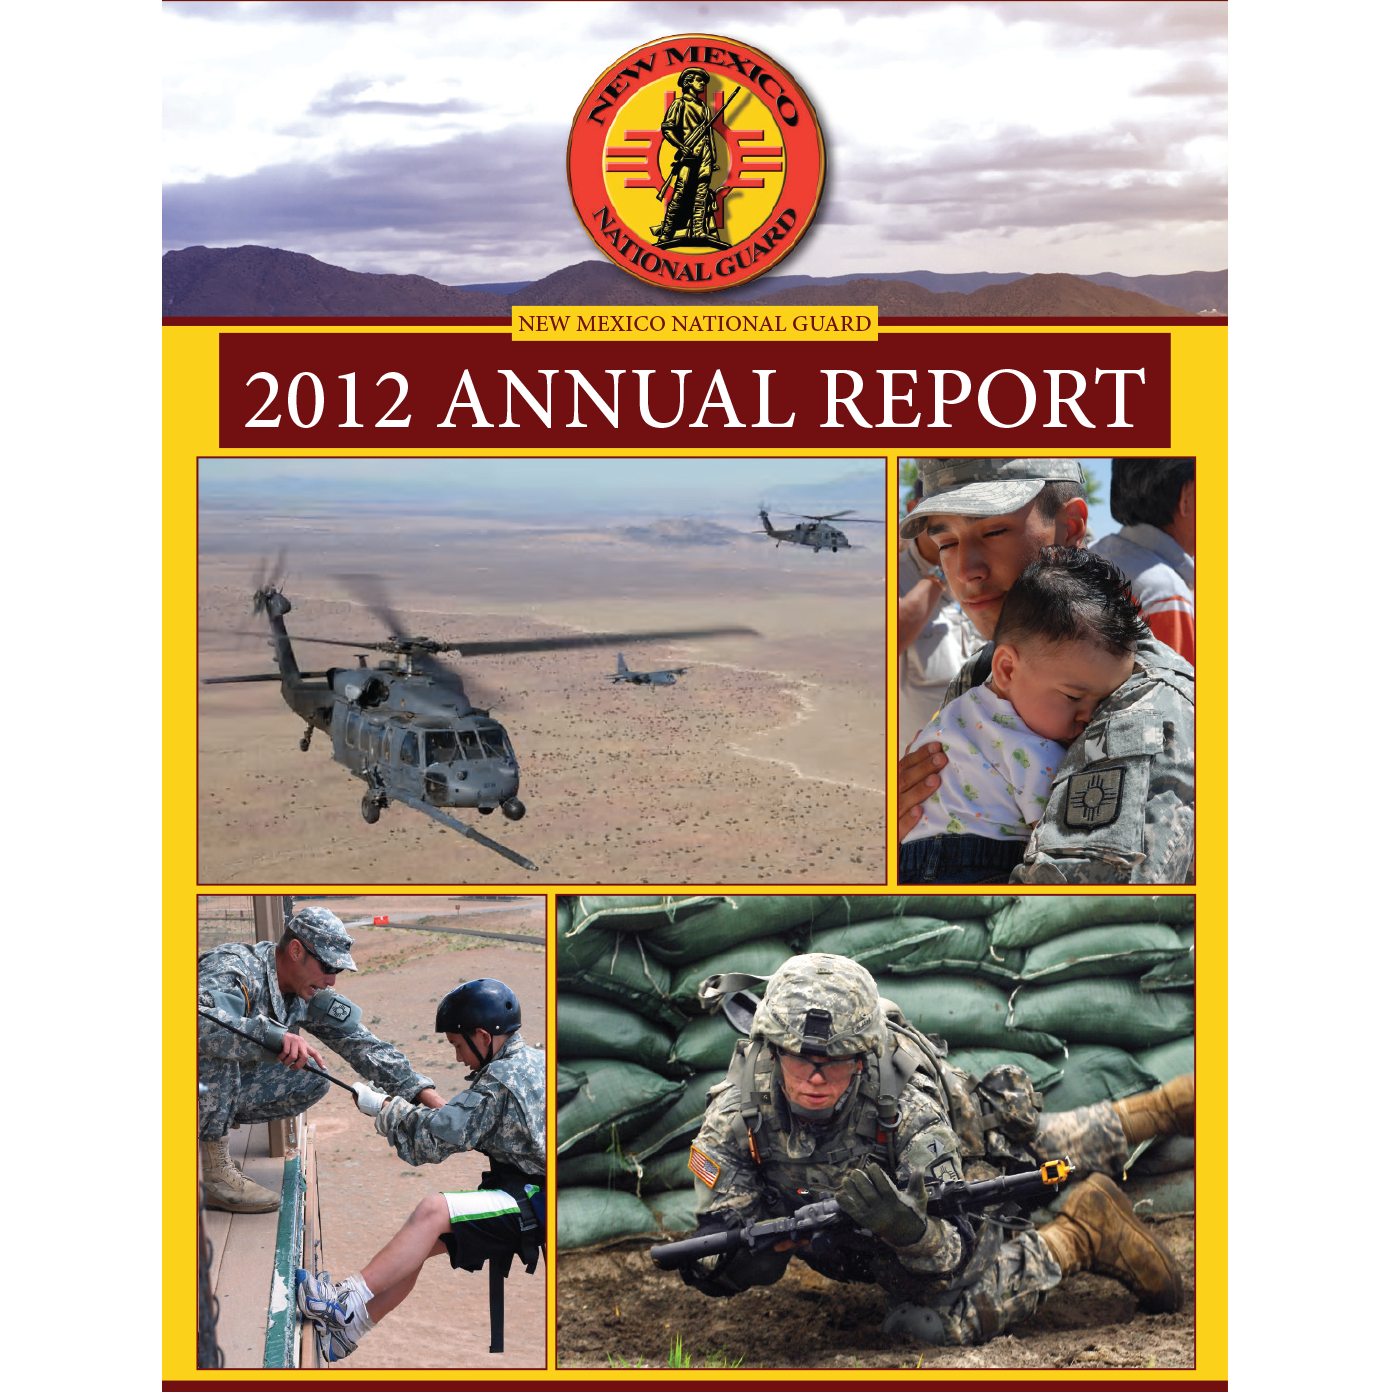 New Mexico National Guard Annual Report